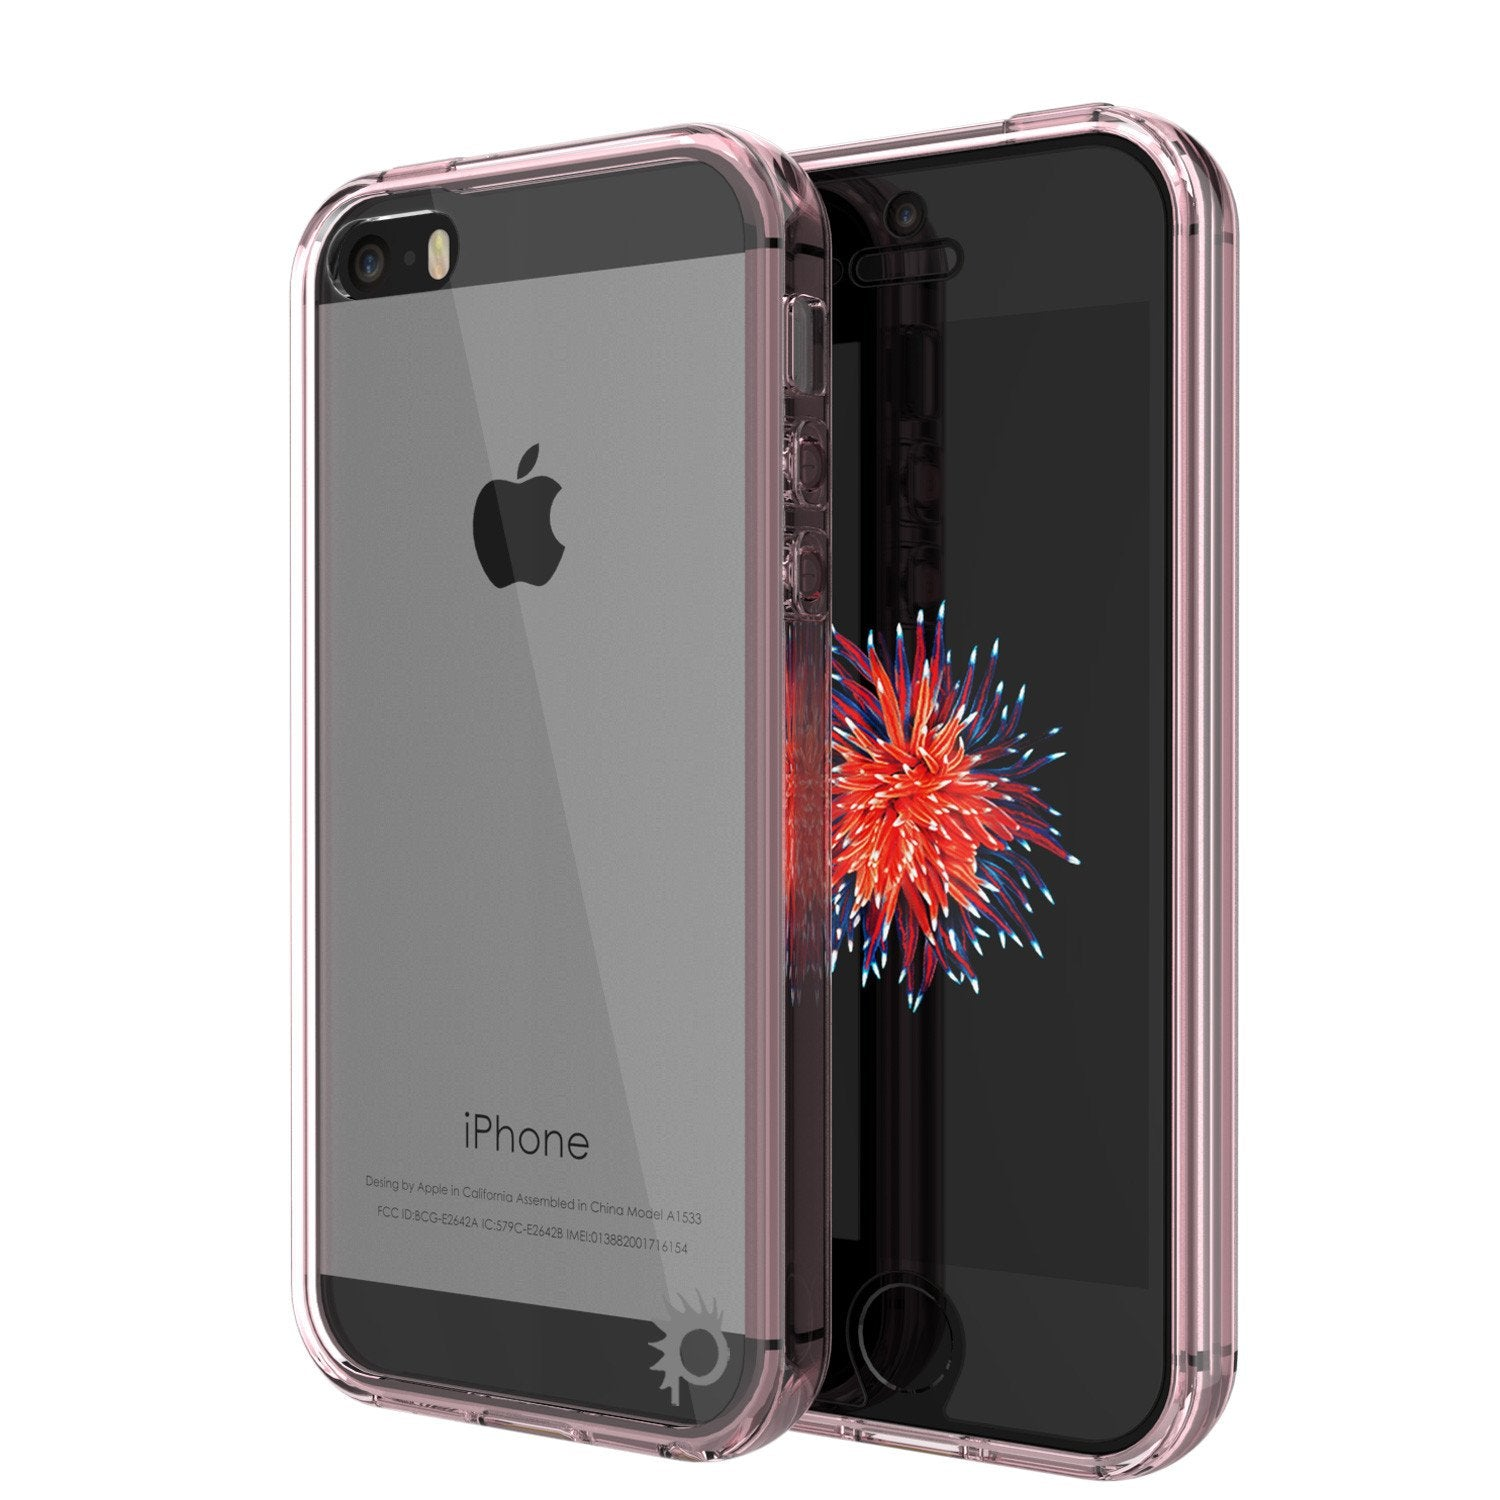 iPhone SE/5S/5 Case Punkcase® LUCID 2.0 Crystal Pink Series w/ PUNK SHIELD Screen Protector | Ultra Fit - PunkCase NZ